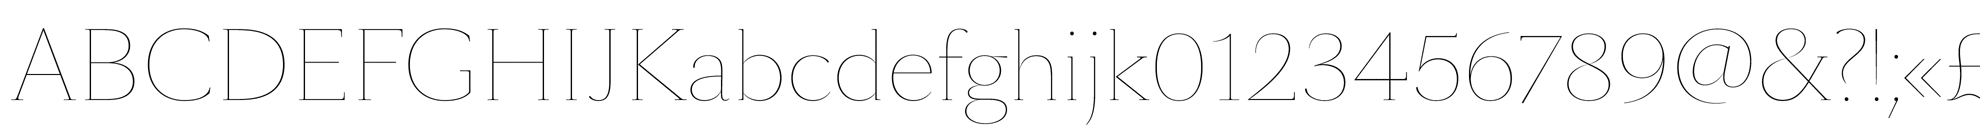 SangBleu Serif Hairline